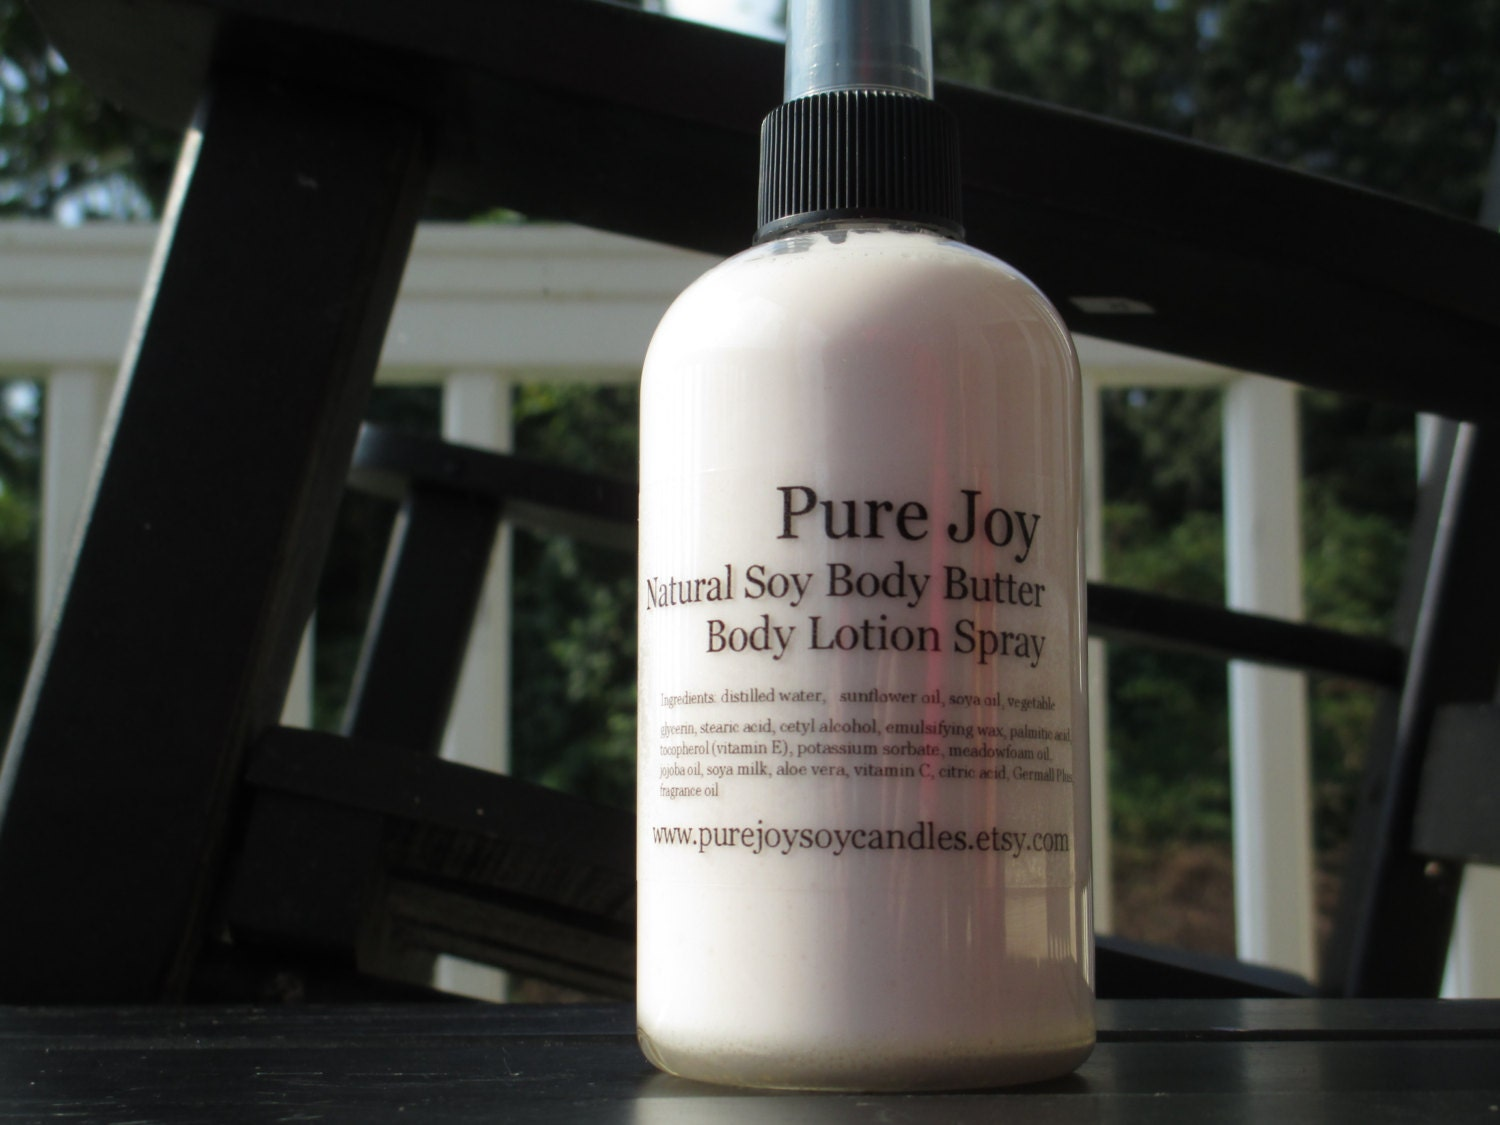 Natural Soy Body Butter Lotion Spray Premium Scented - PureJoySoyCandles